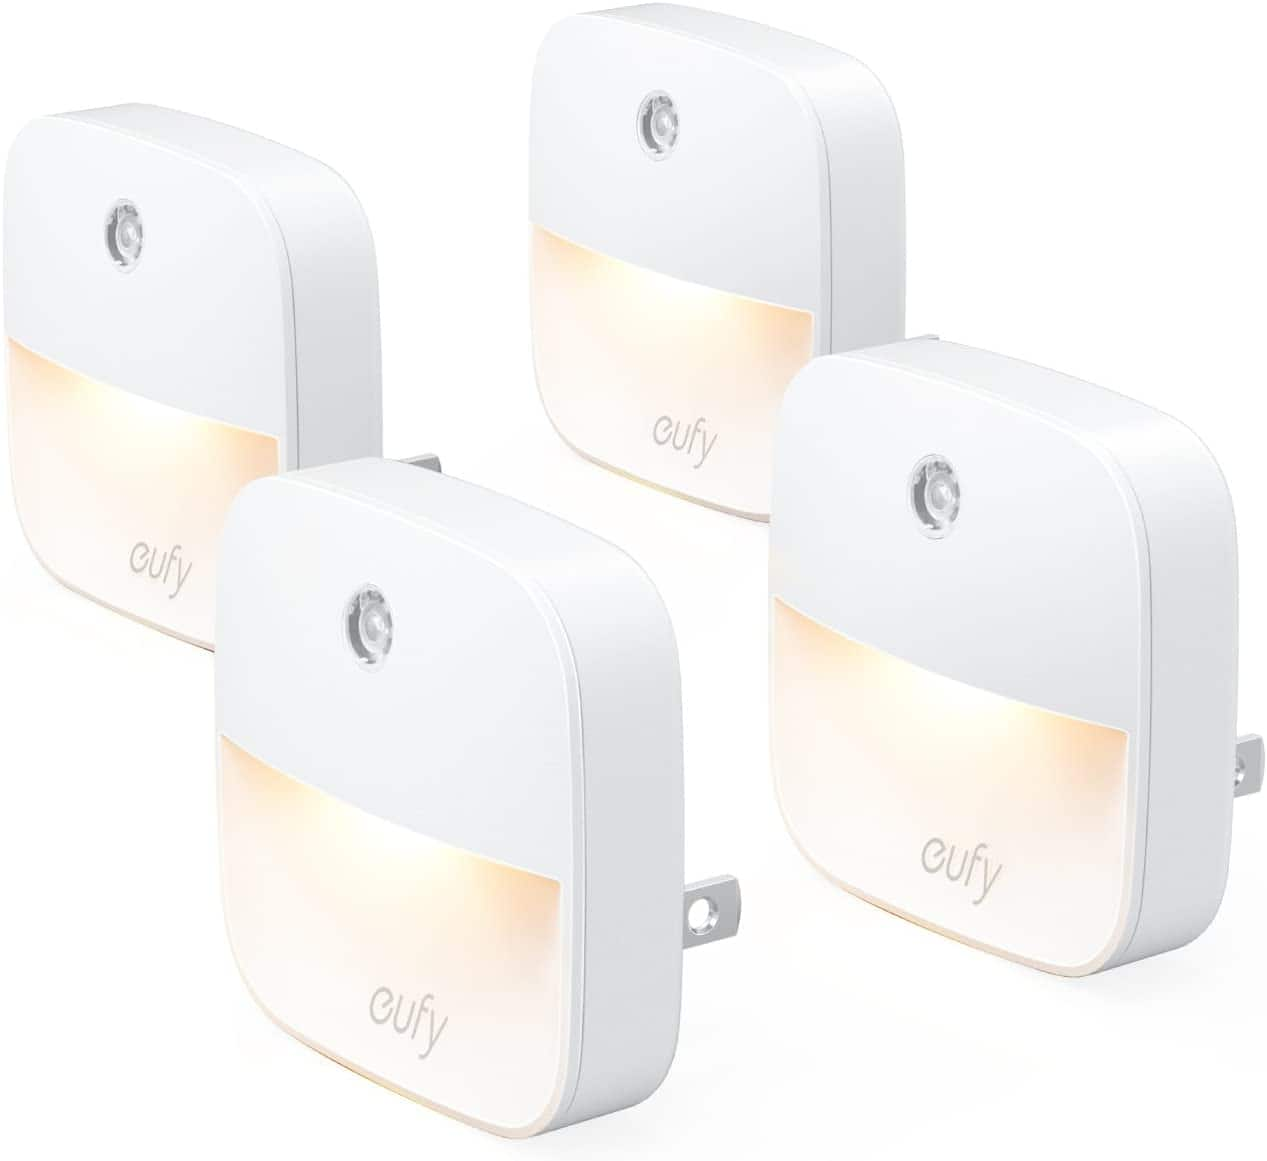 Amazon Prime Members: 4-Pack eufy by Anker Lumi Plug-in Night Light (Warm White LED) $10.30, 3-Pack eufy by Anker Stick-On Night Light $12.99 + Free Shipping $10.99